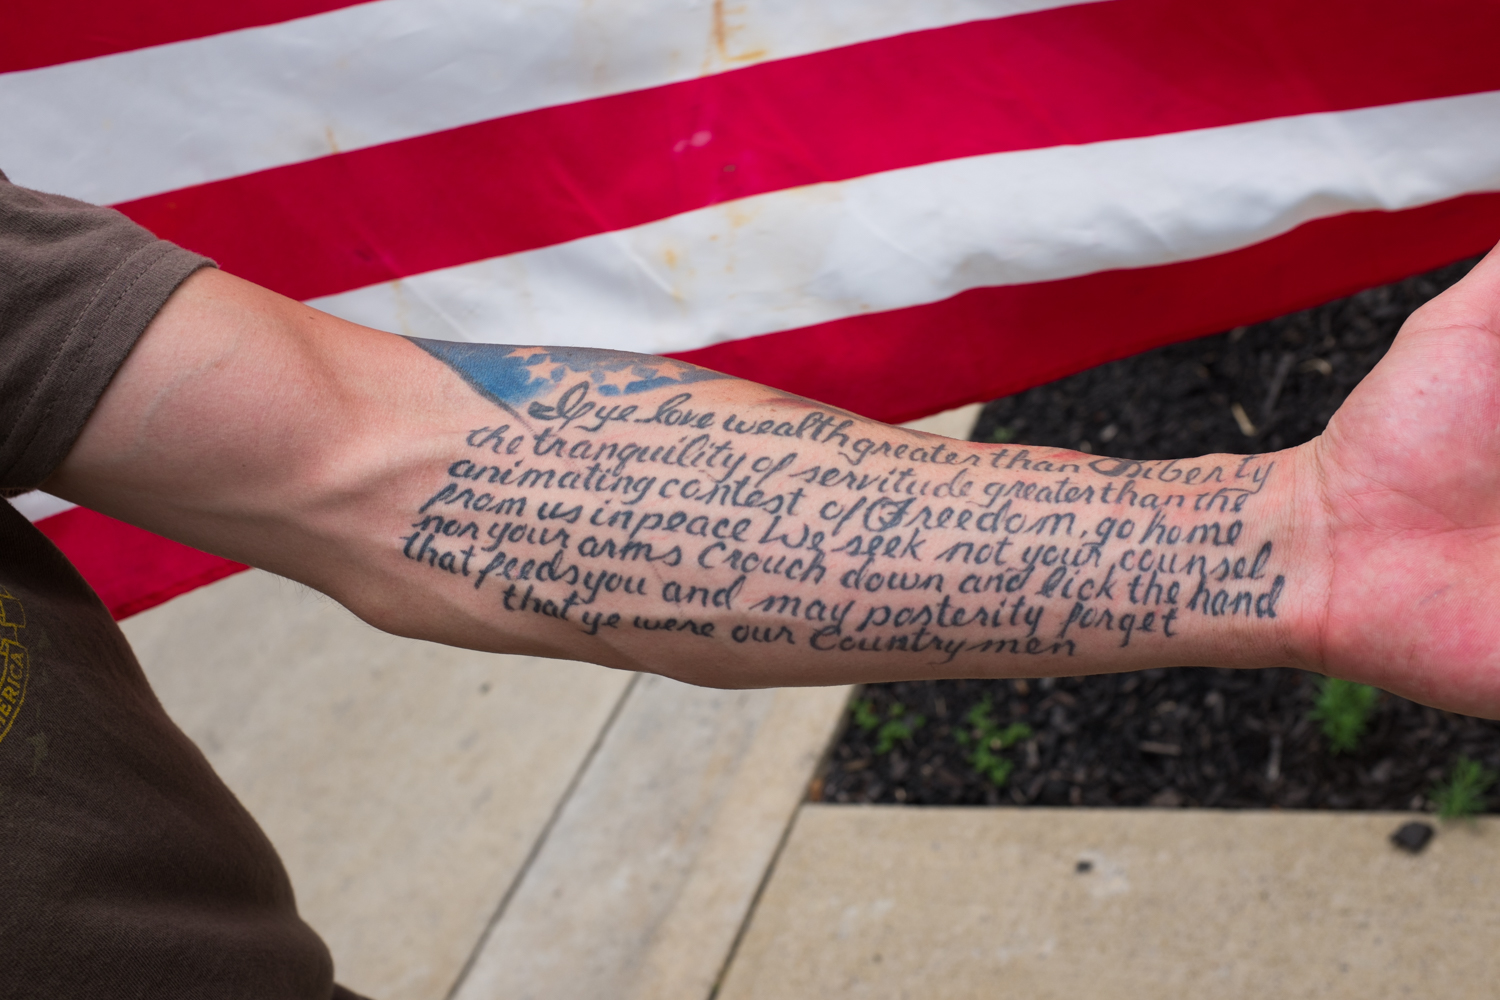 A quote by Sam Adams on Sean's arm.